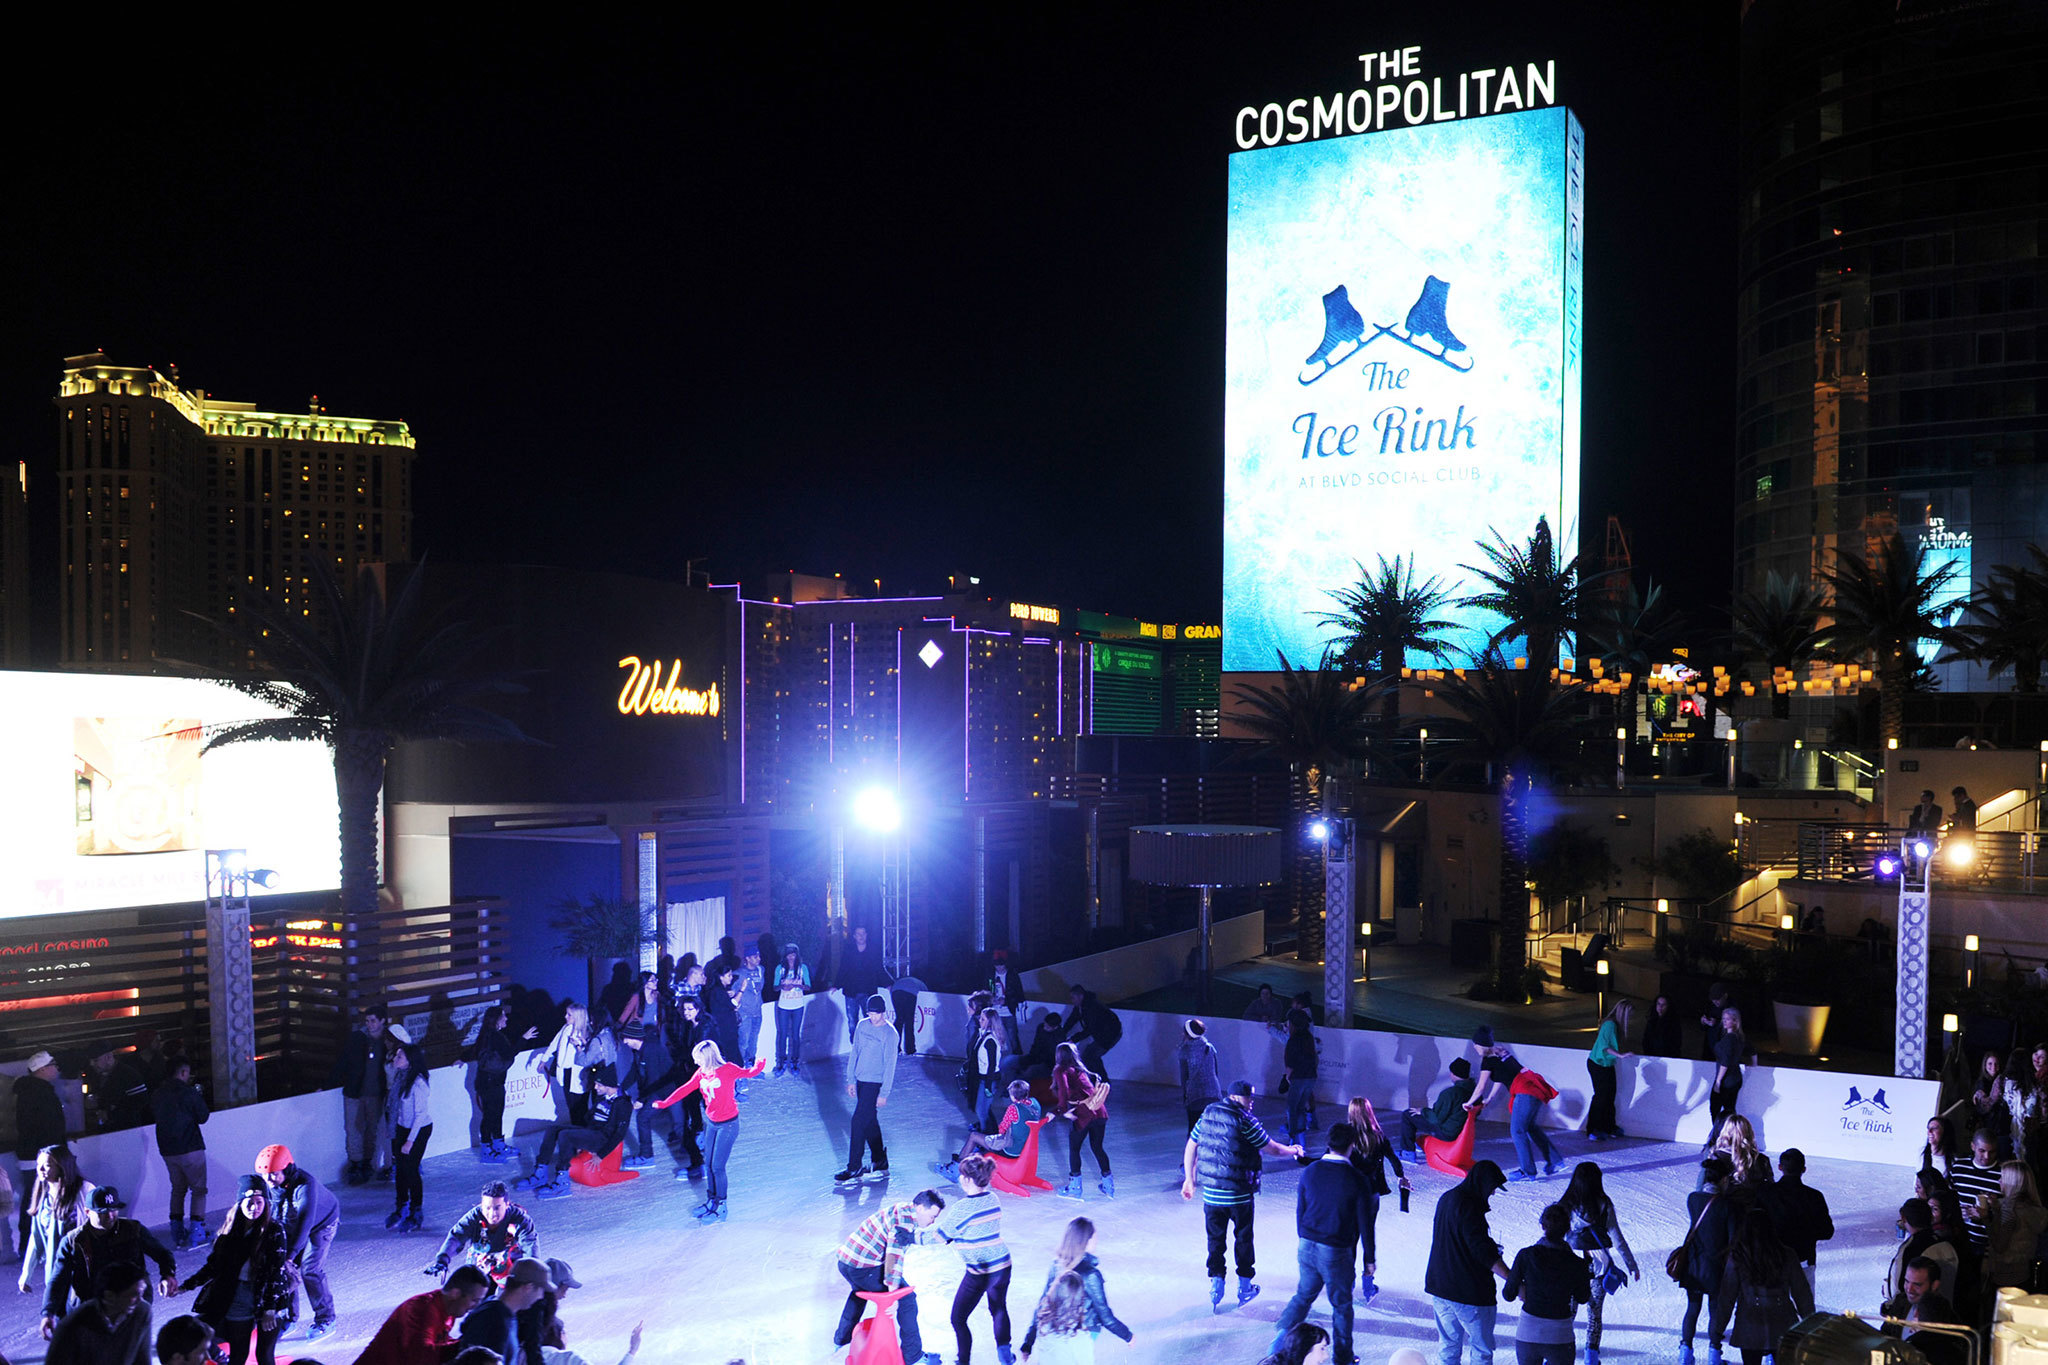 Ice Rink at the Cosmopolitan